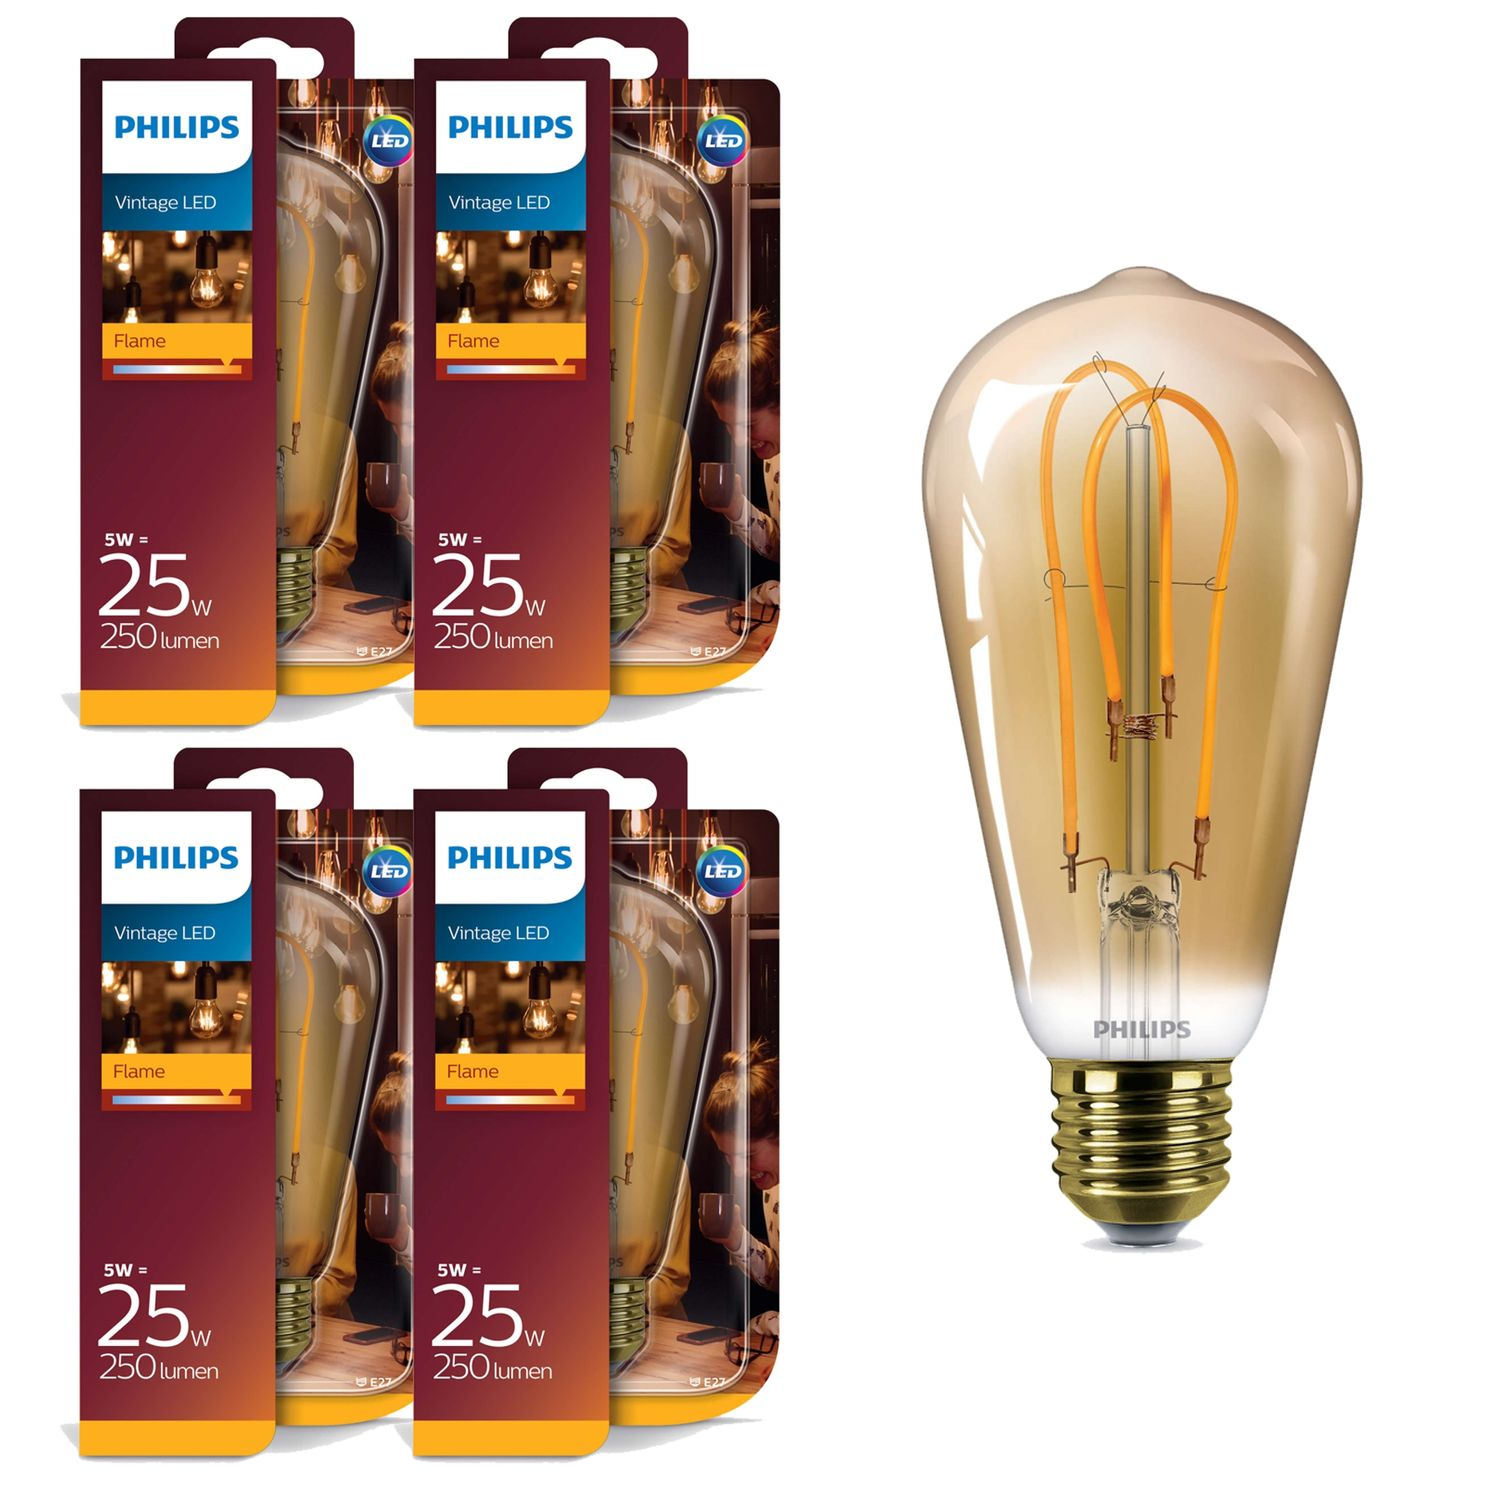 4x Philips 8718696743058 E27 Vintage LED Leuchtmittel 5W (25W) 2000k Flame 250Lm 001